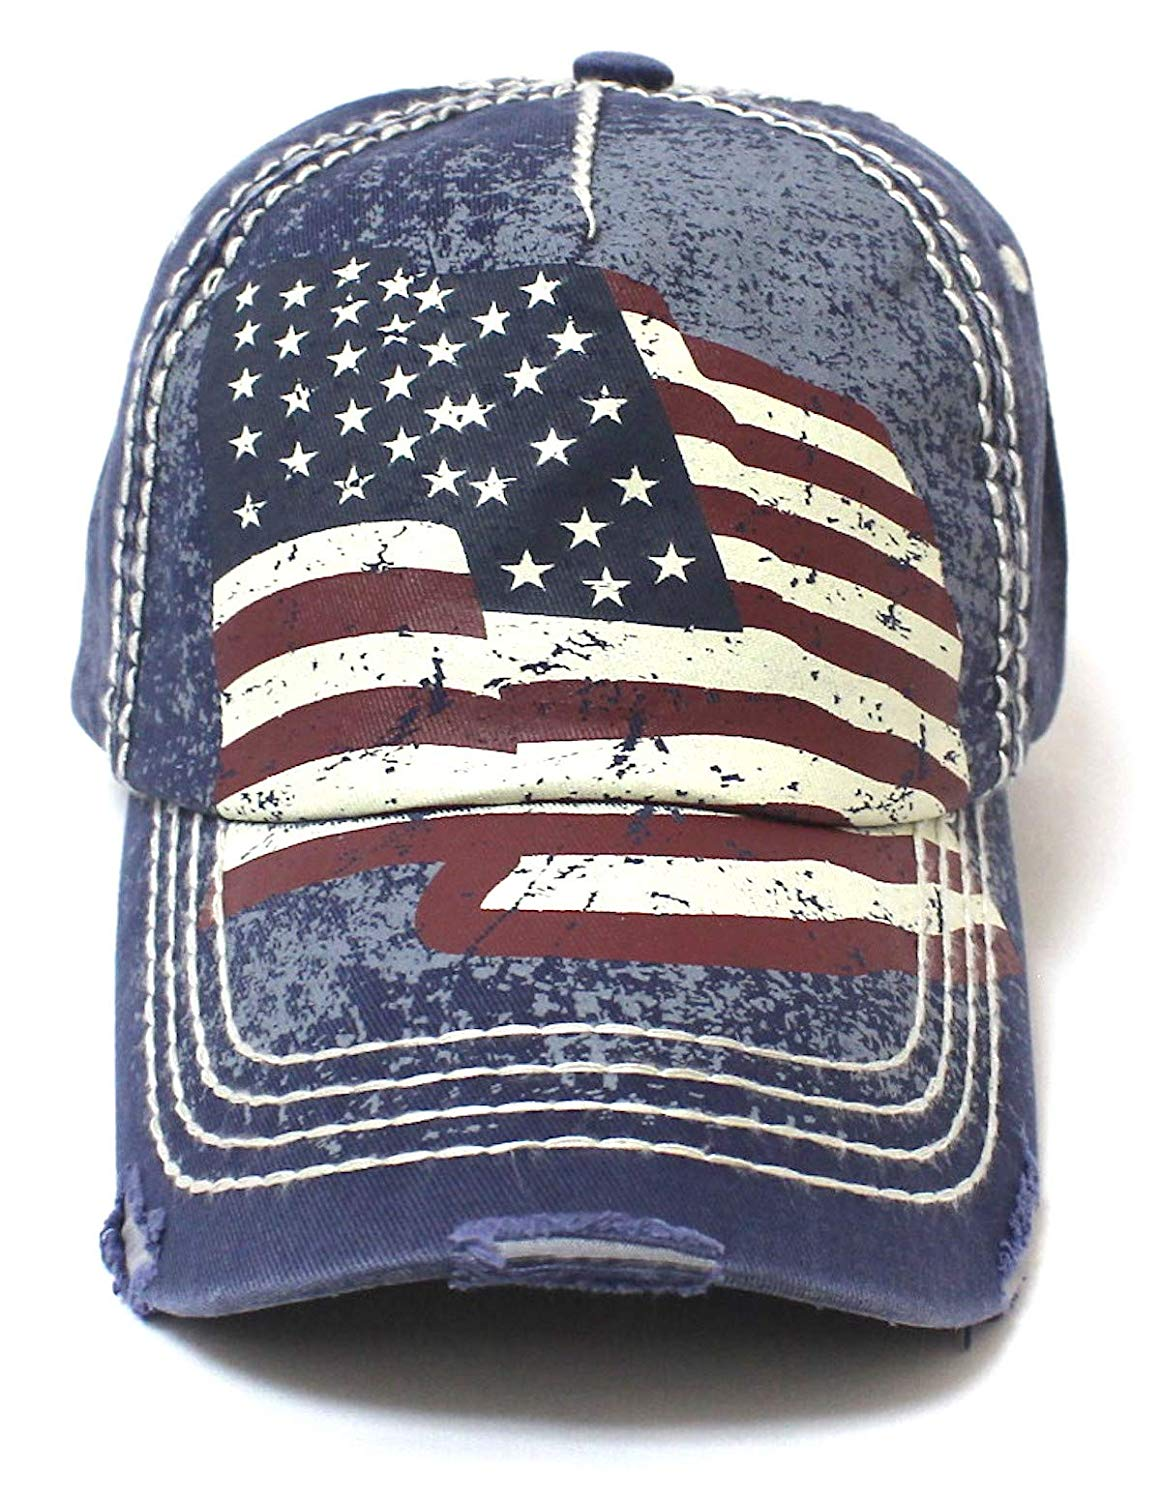 New! Amercan Navy Folding USA Flag Vintage Ballcap - Caps 'N Vintage